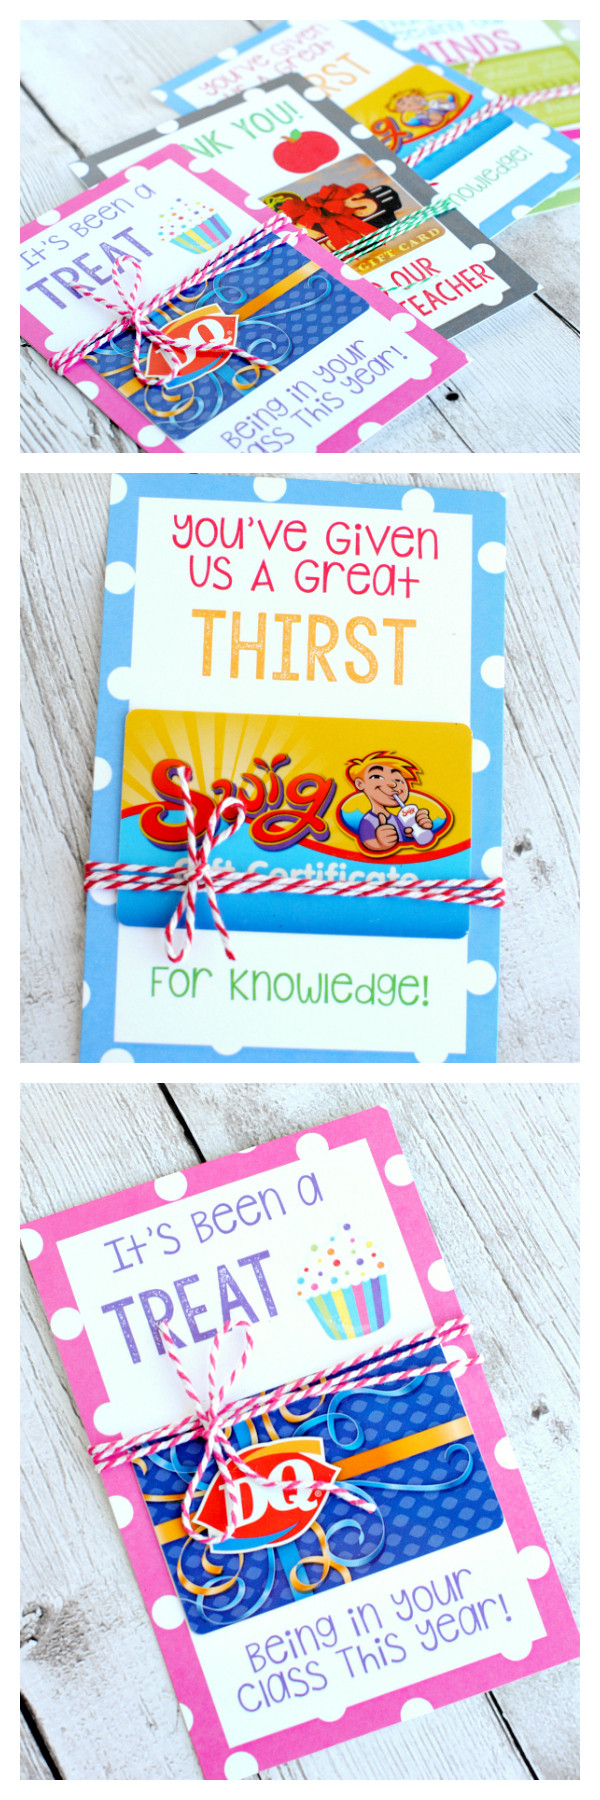 Best ideas about Teacher Gift Card Ideas . Save or Pin Teacher Appreciation Gifts Printable Gift Card Holders Now.